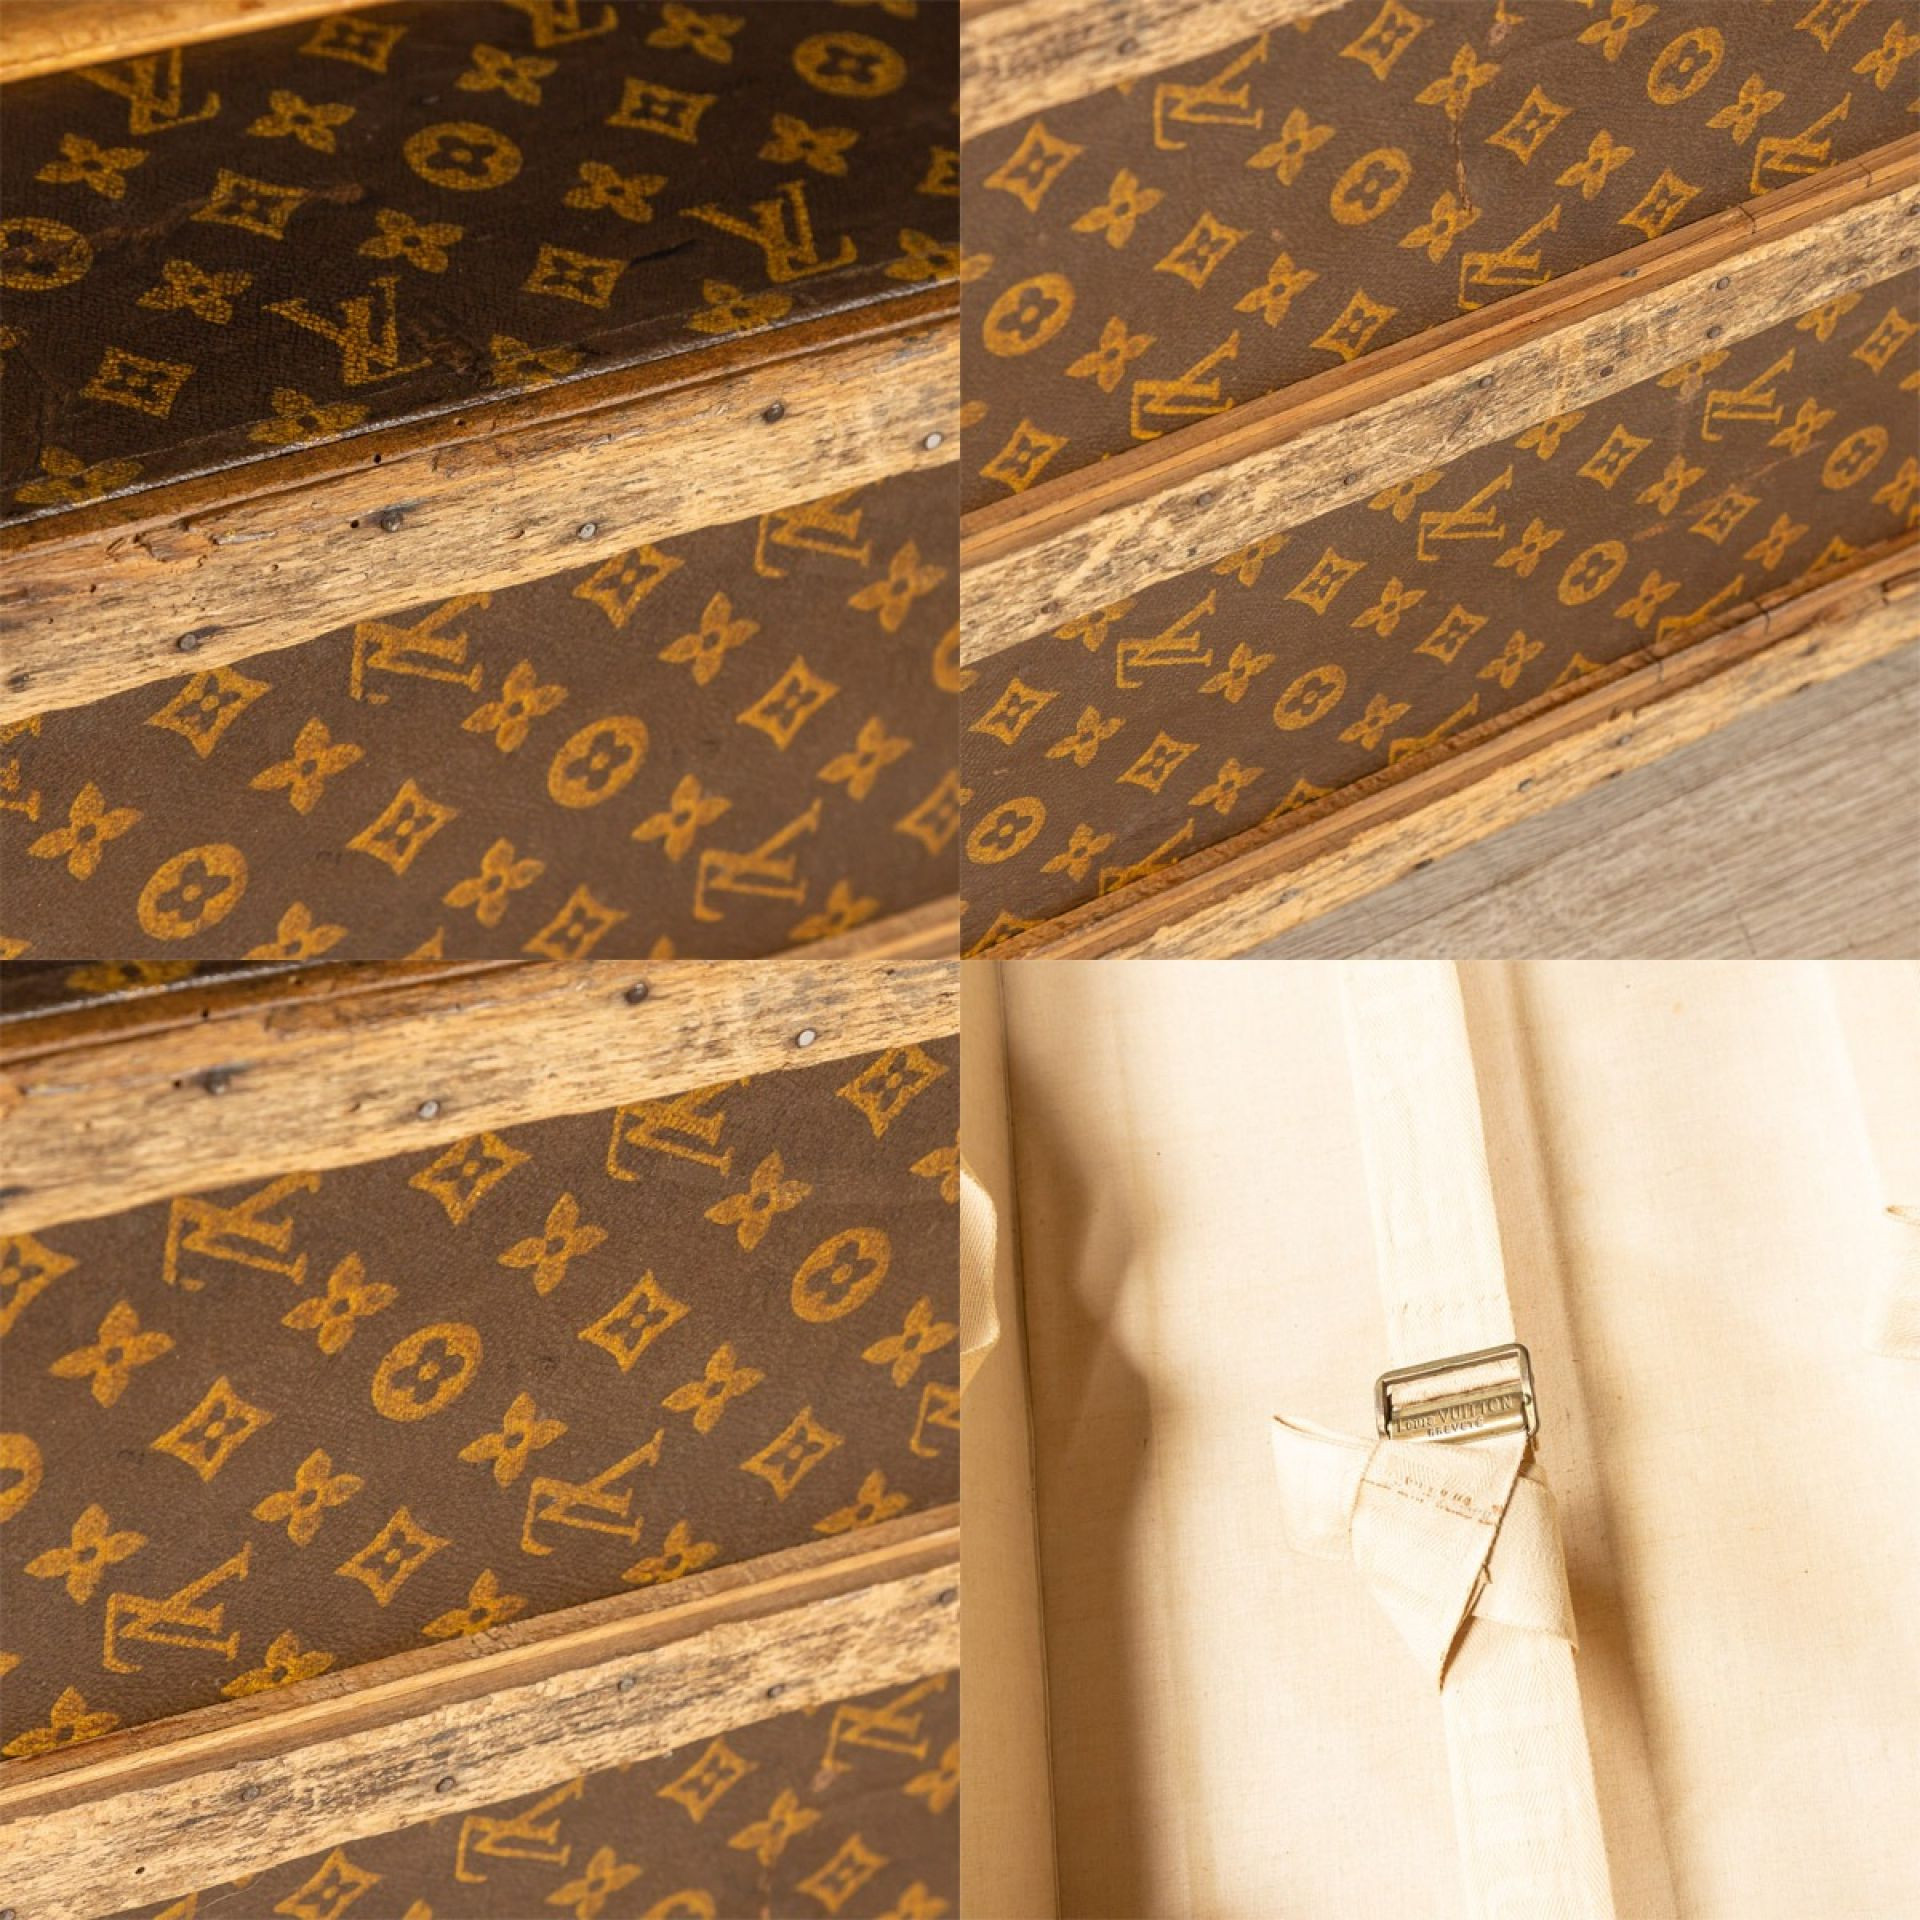 ANTIQUE 20thC LOUIS VUITTON CABIN TRUNK IN MONOGRAMMED CANVAS, FRANCE c.1920